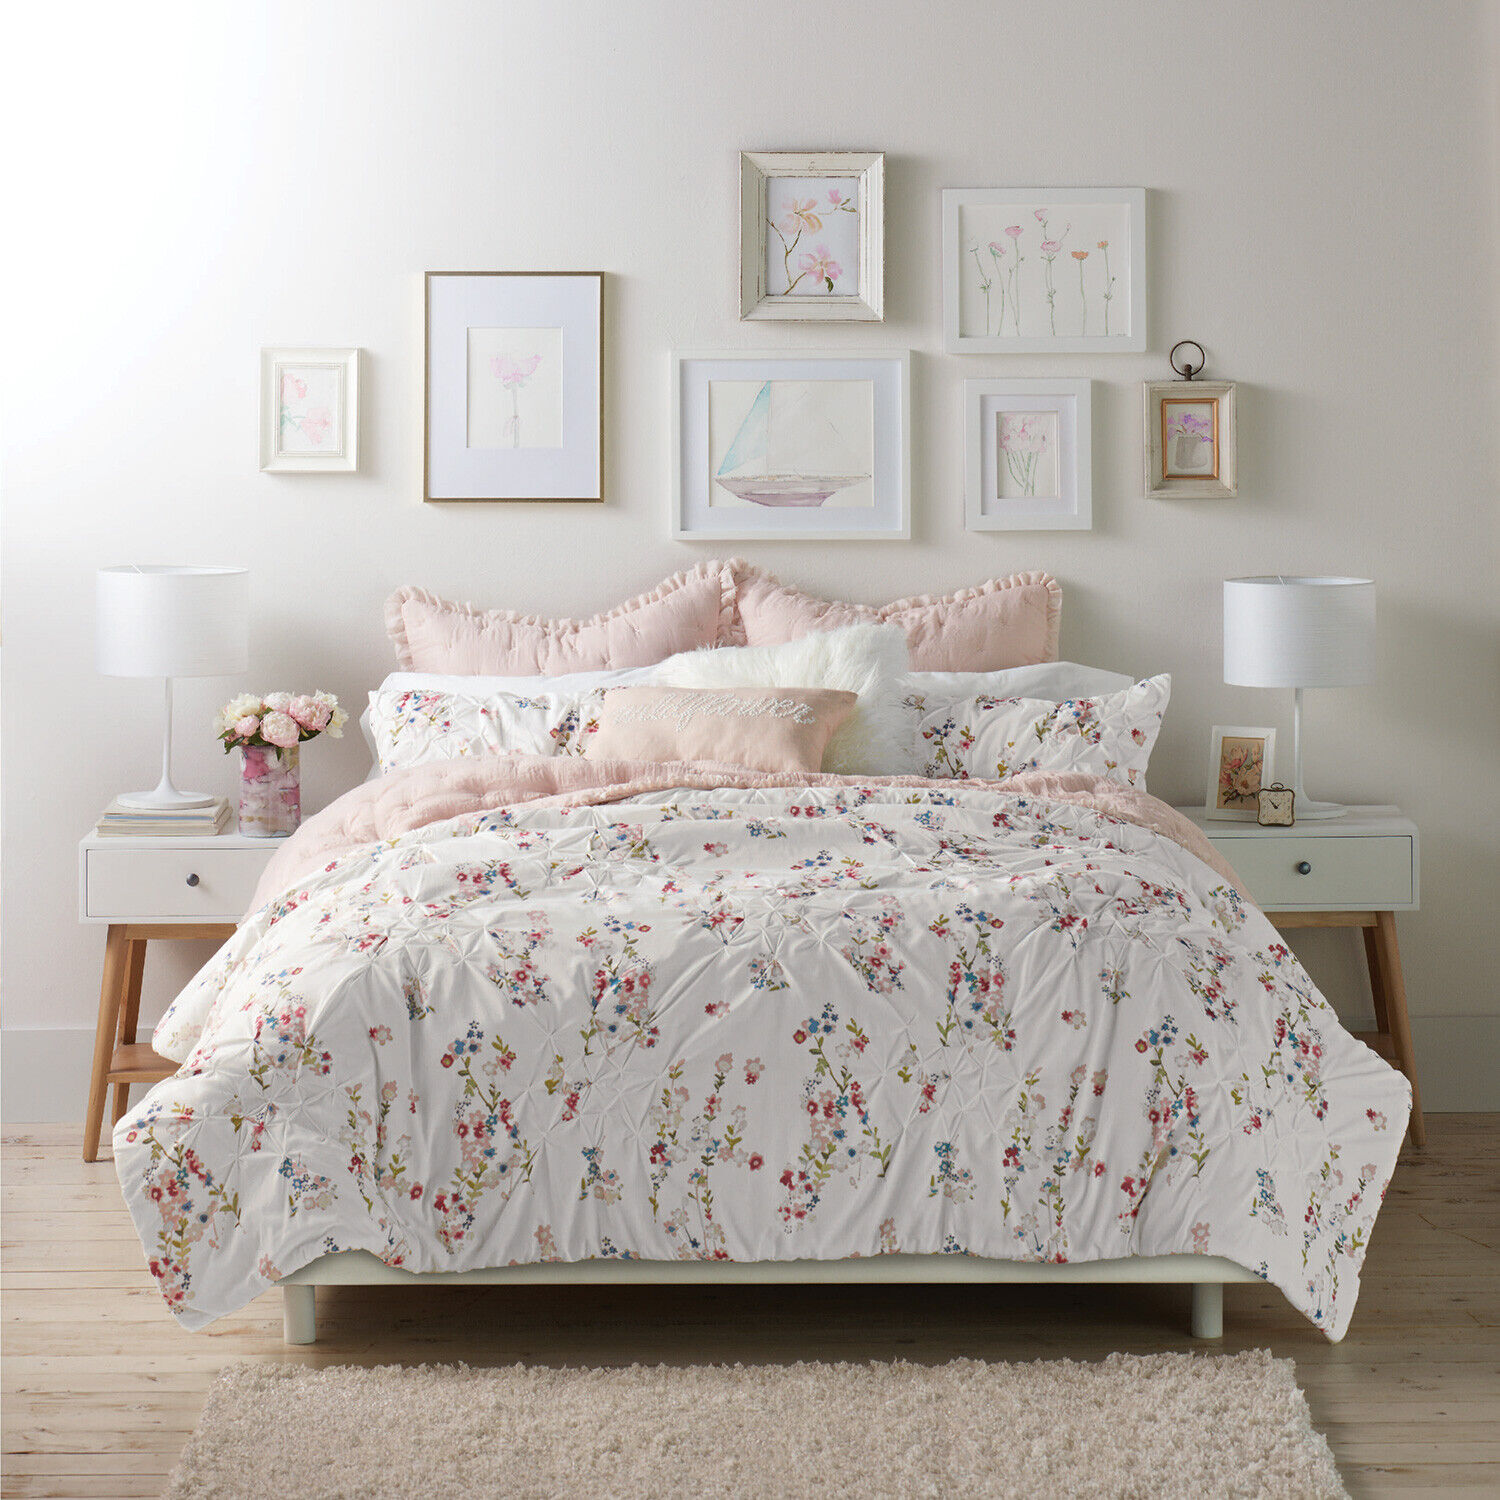 3-Piece King or Full/Queen Oversized Floral Comforter Cotton Bedding Set, Pink Bedding